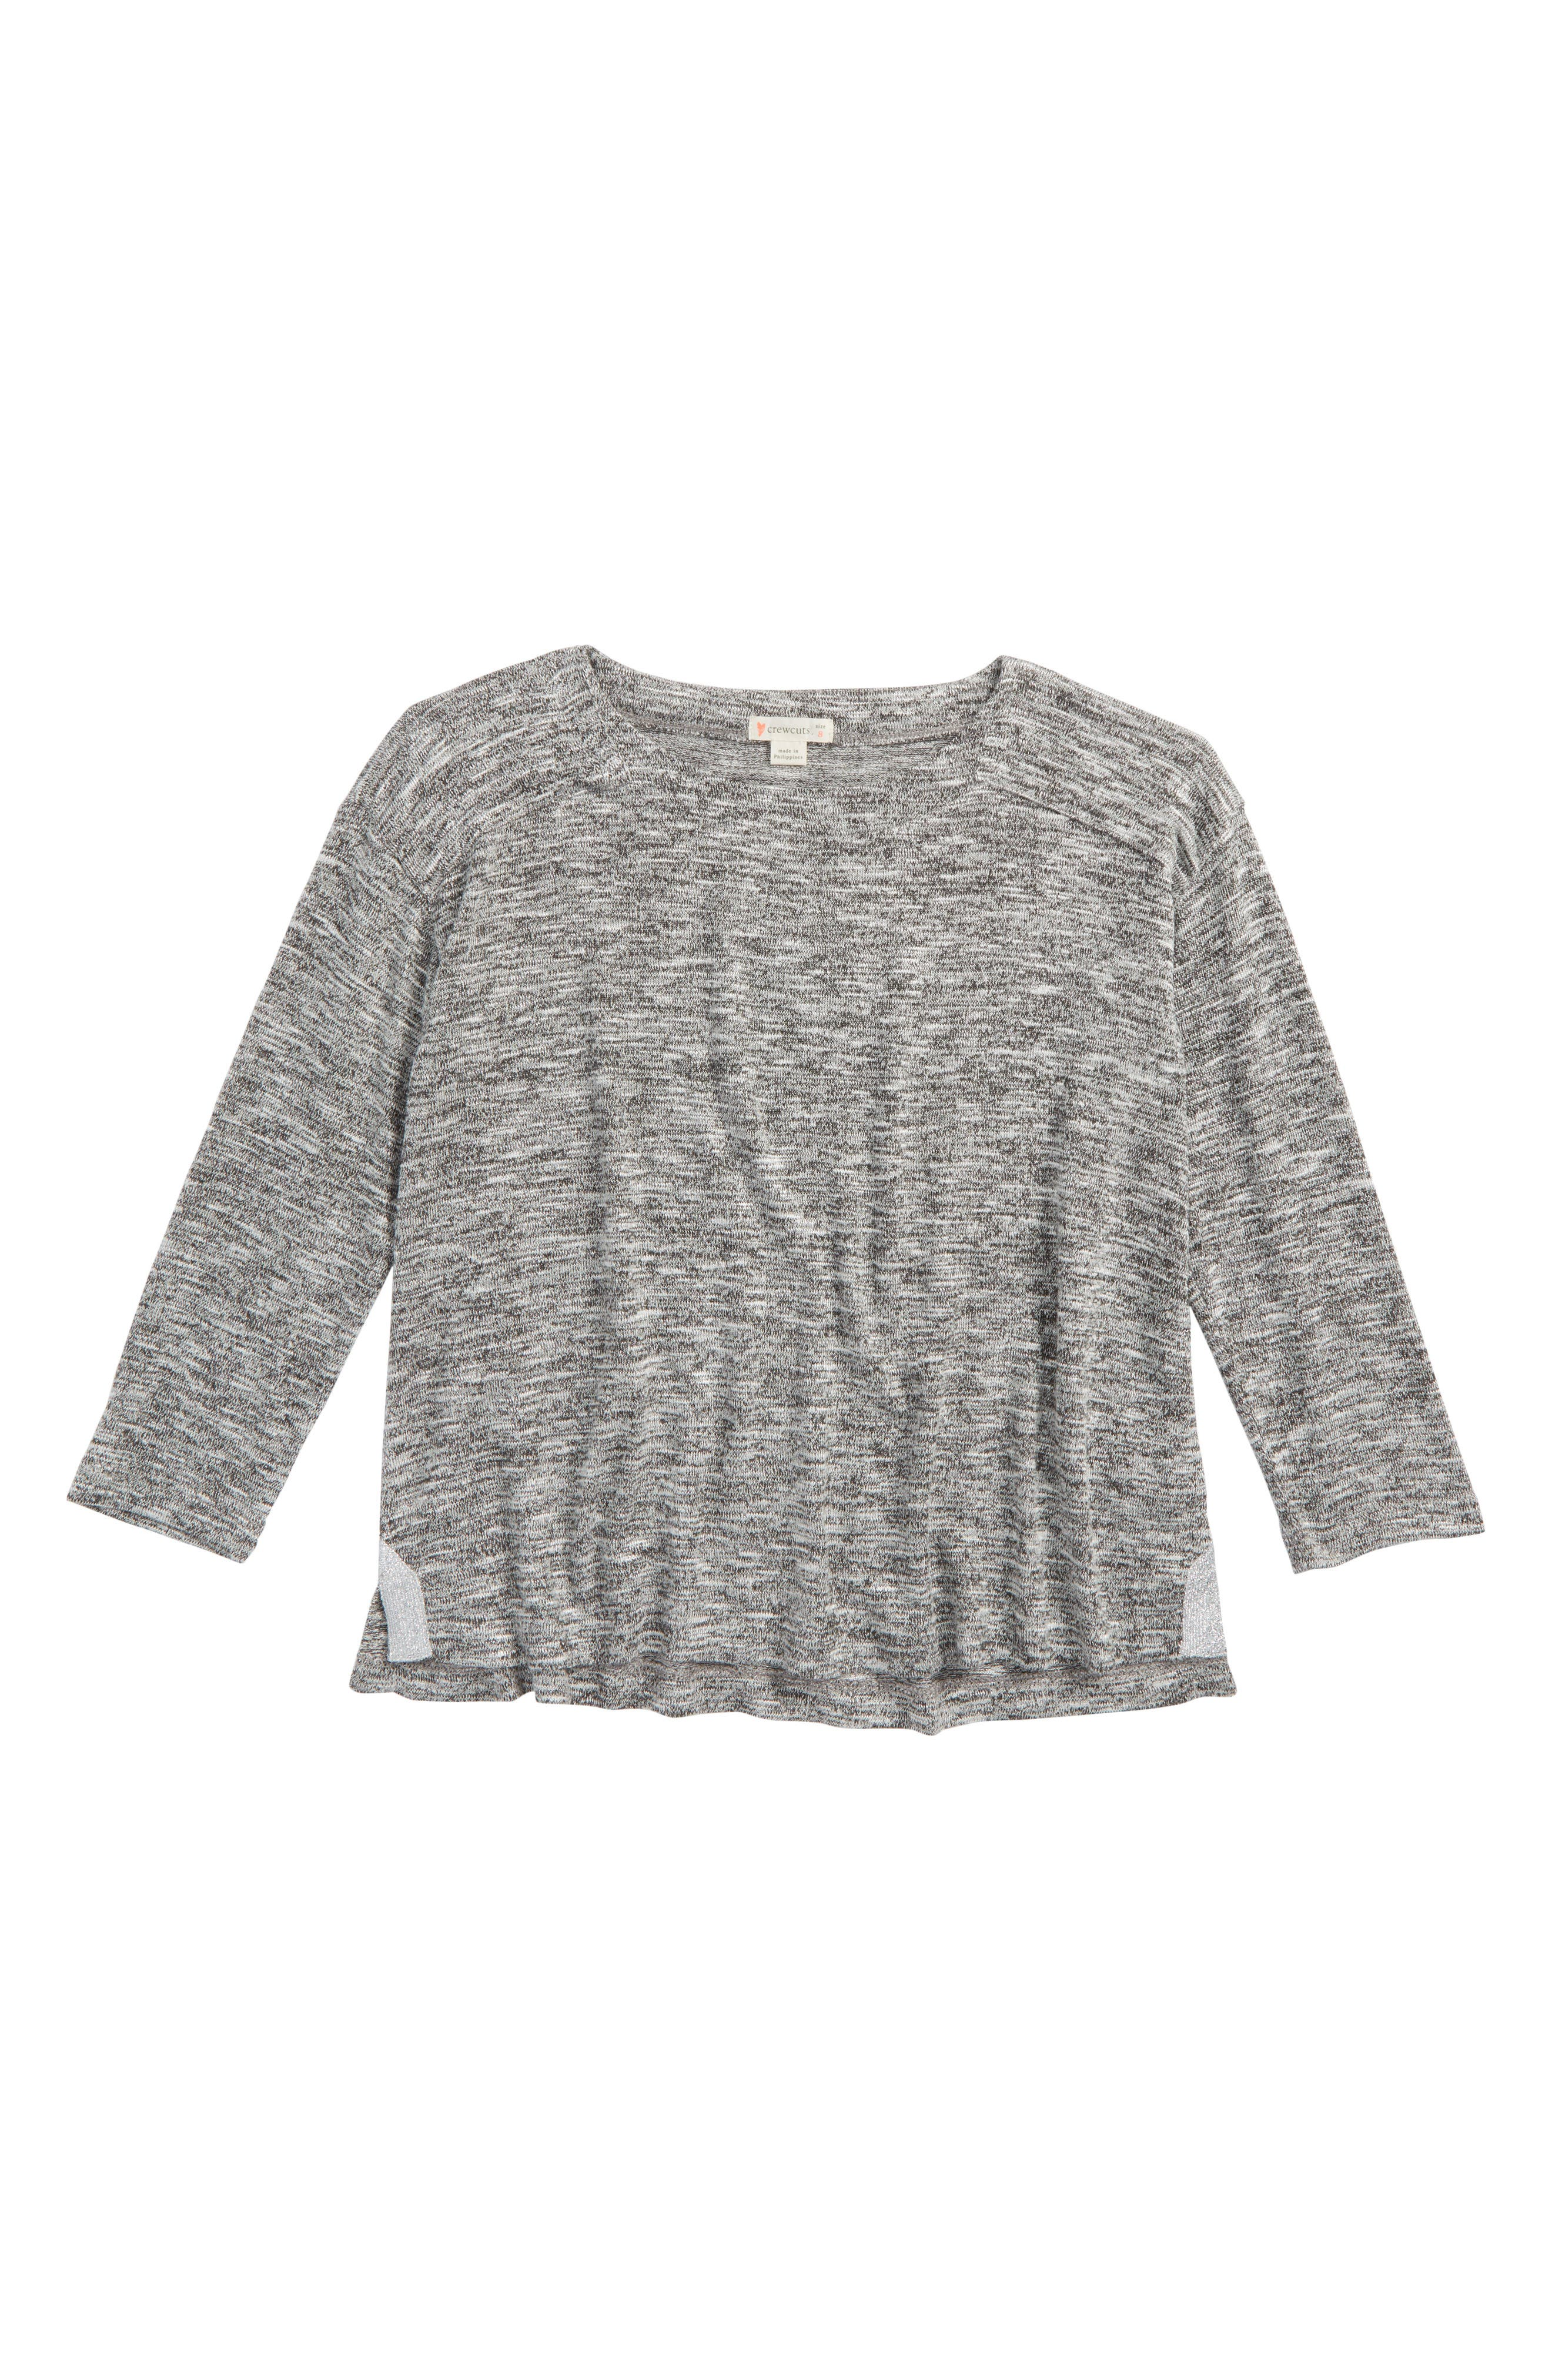 Marled Tee,                         Main,                         color, Speckled Light Gray